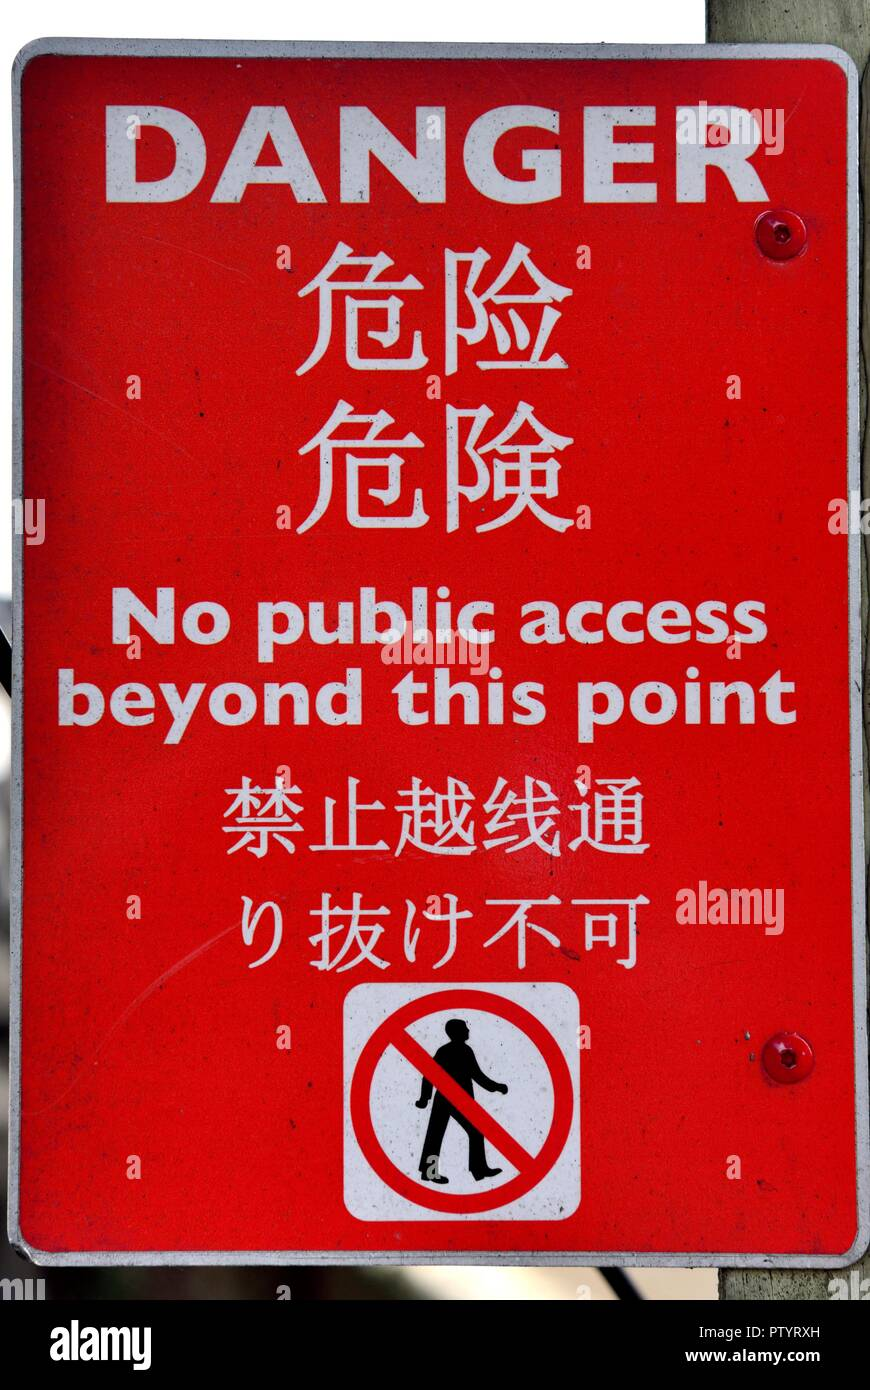 Danger,no public access beyond this point,warning sign, - Stock Image